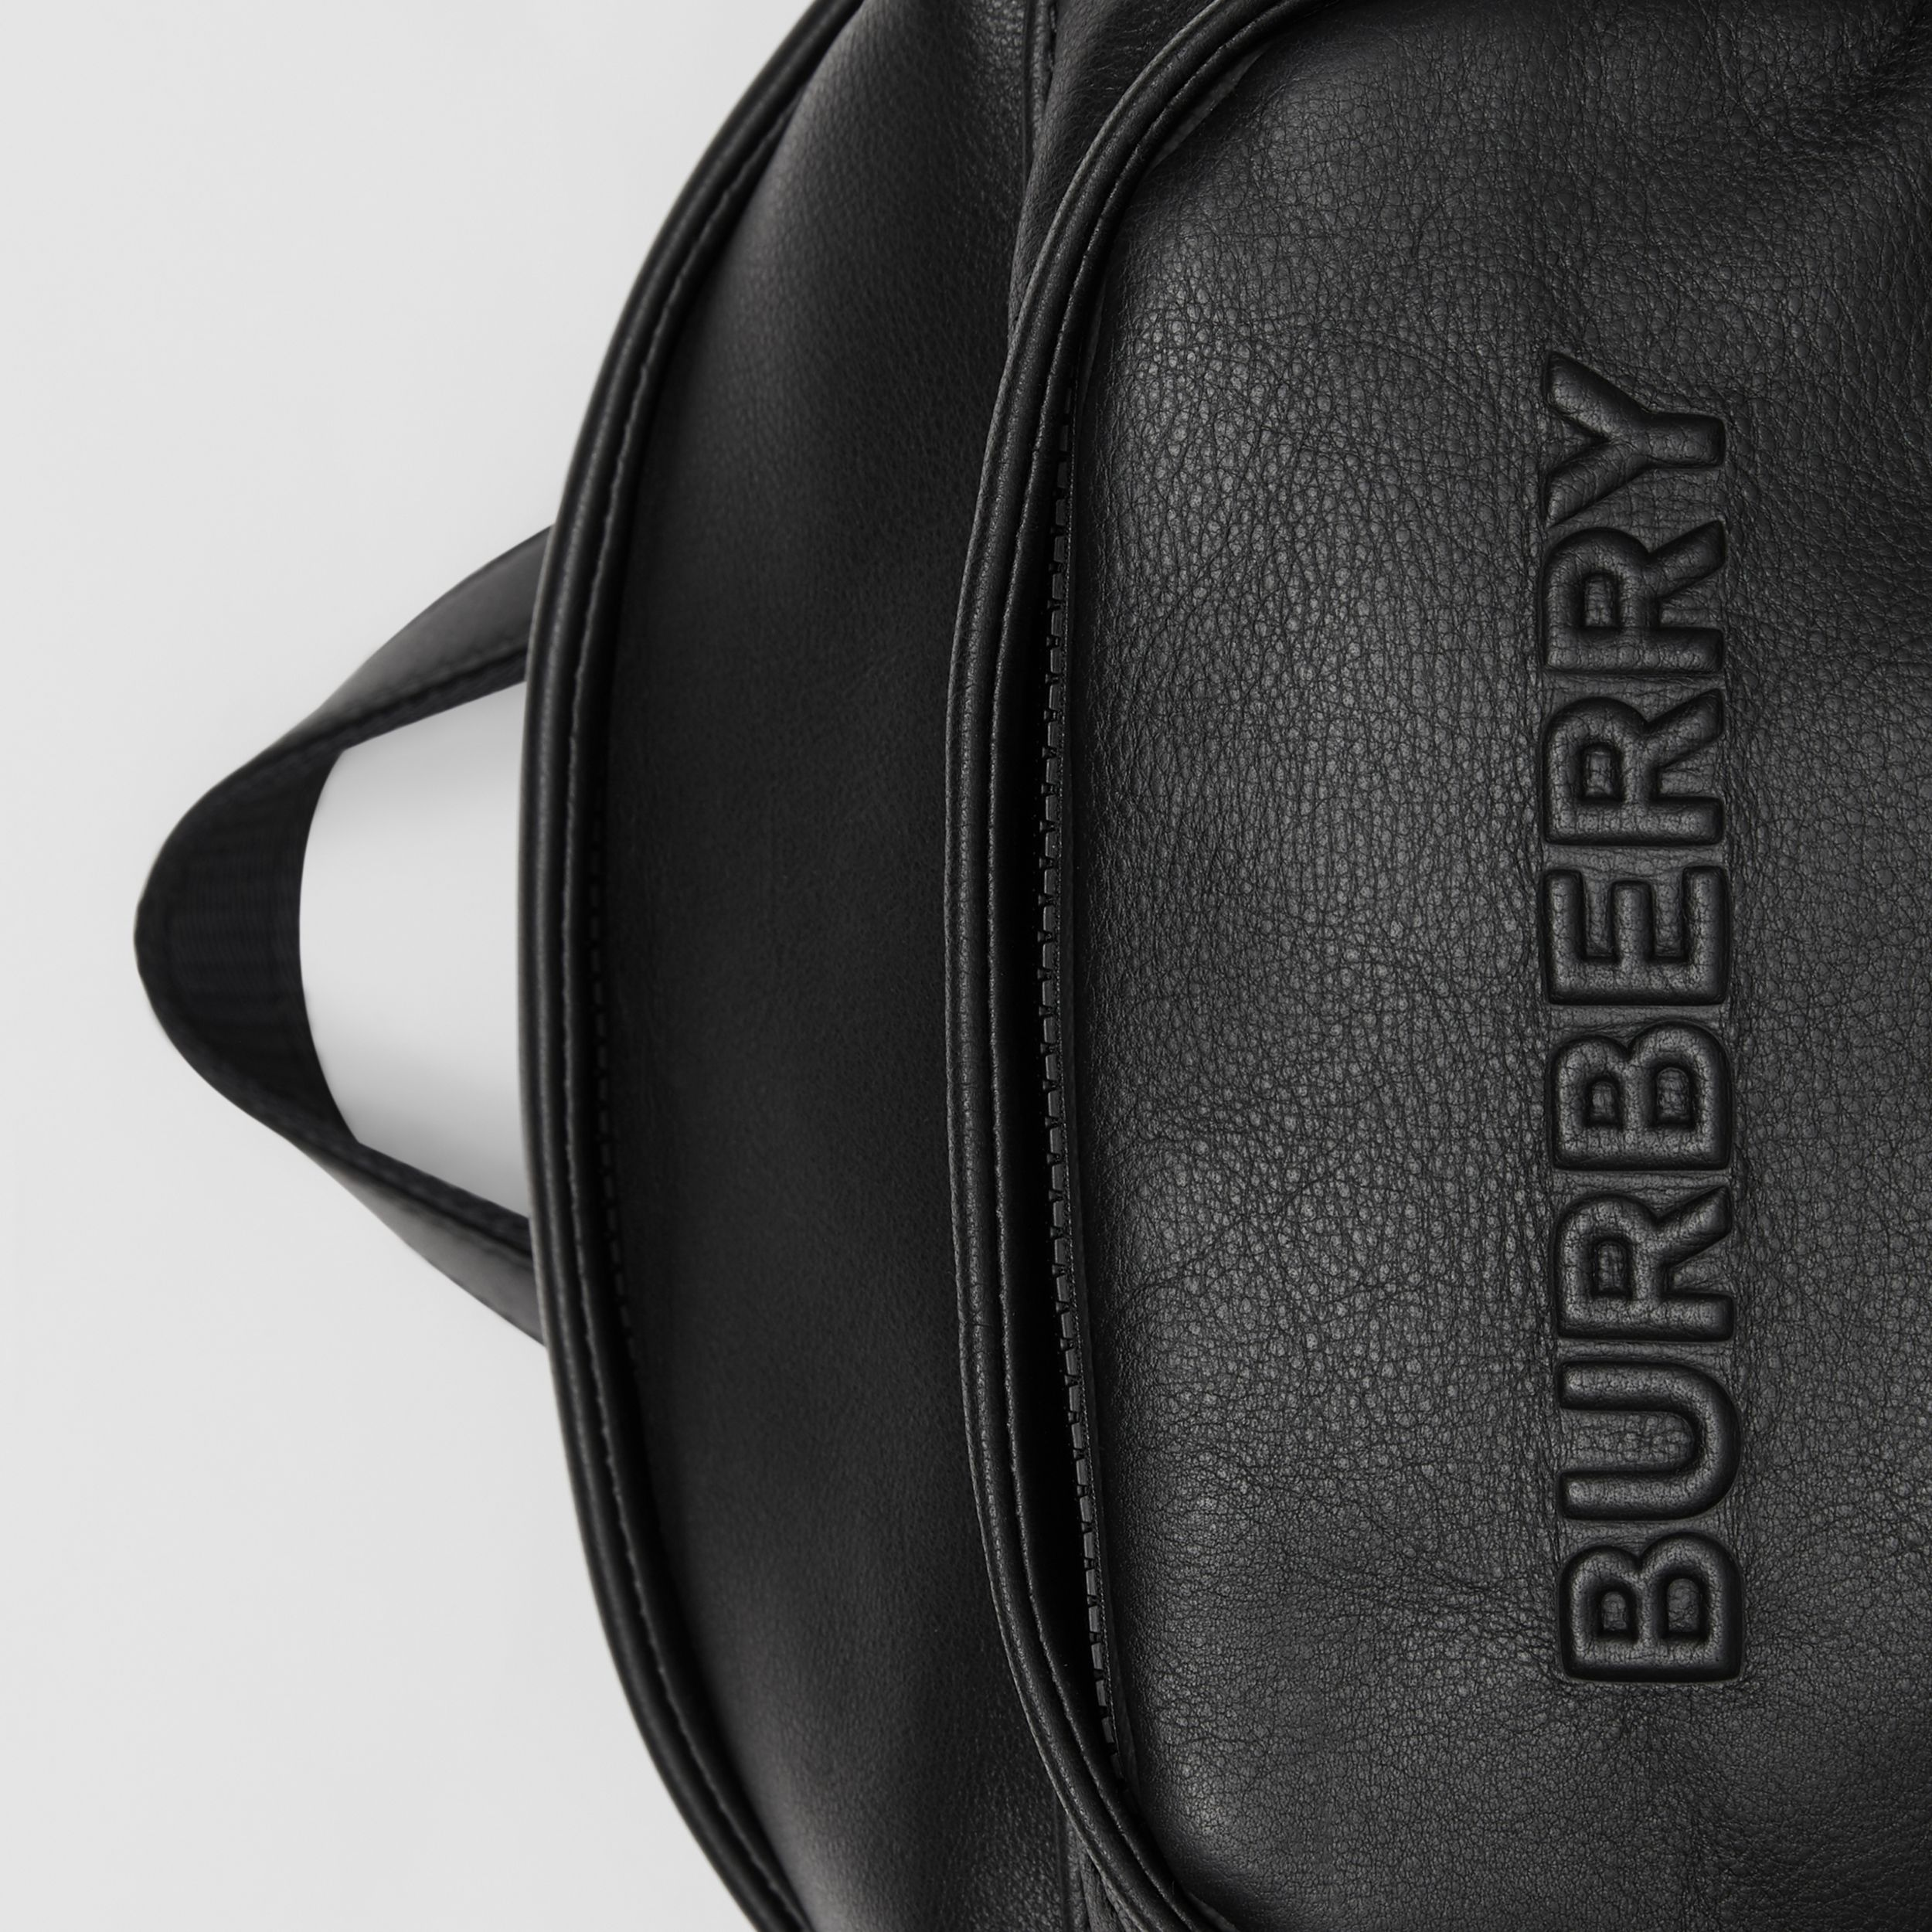 Large Logo Embossed Leather Backpack in Black - Men | Burberry - 2